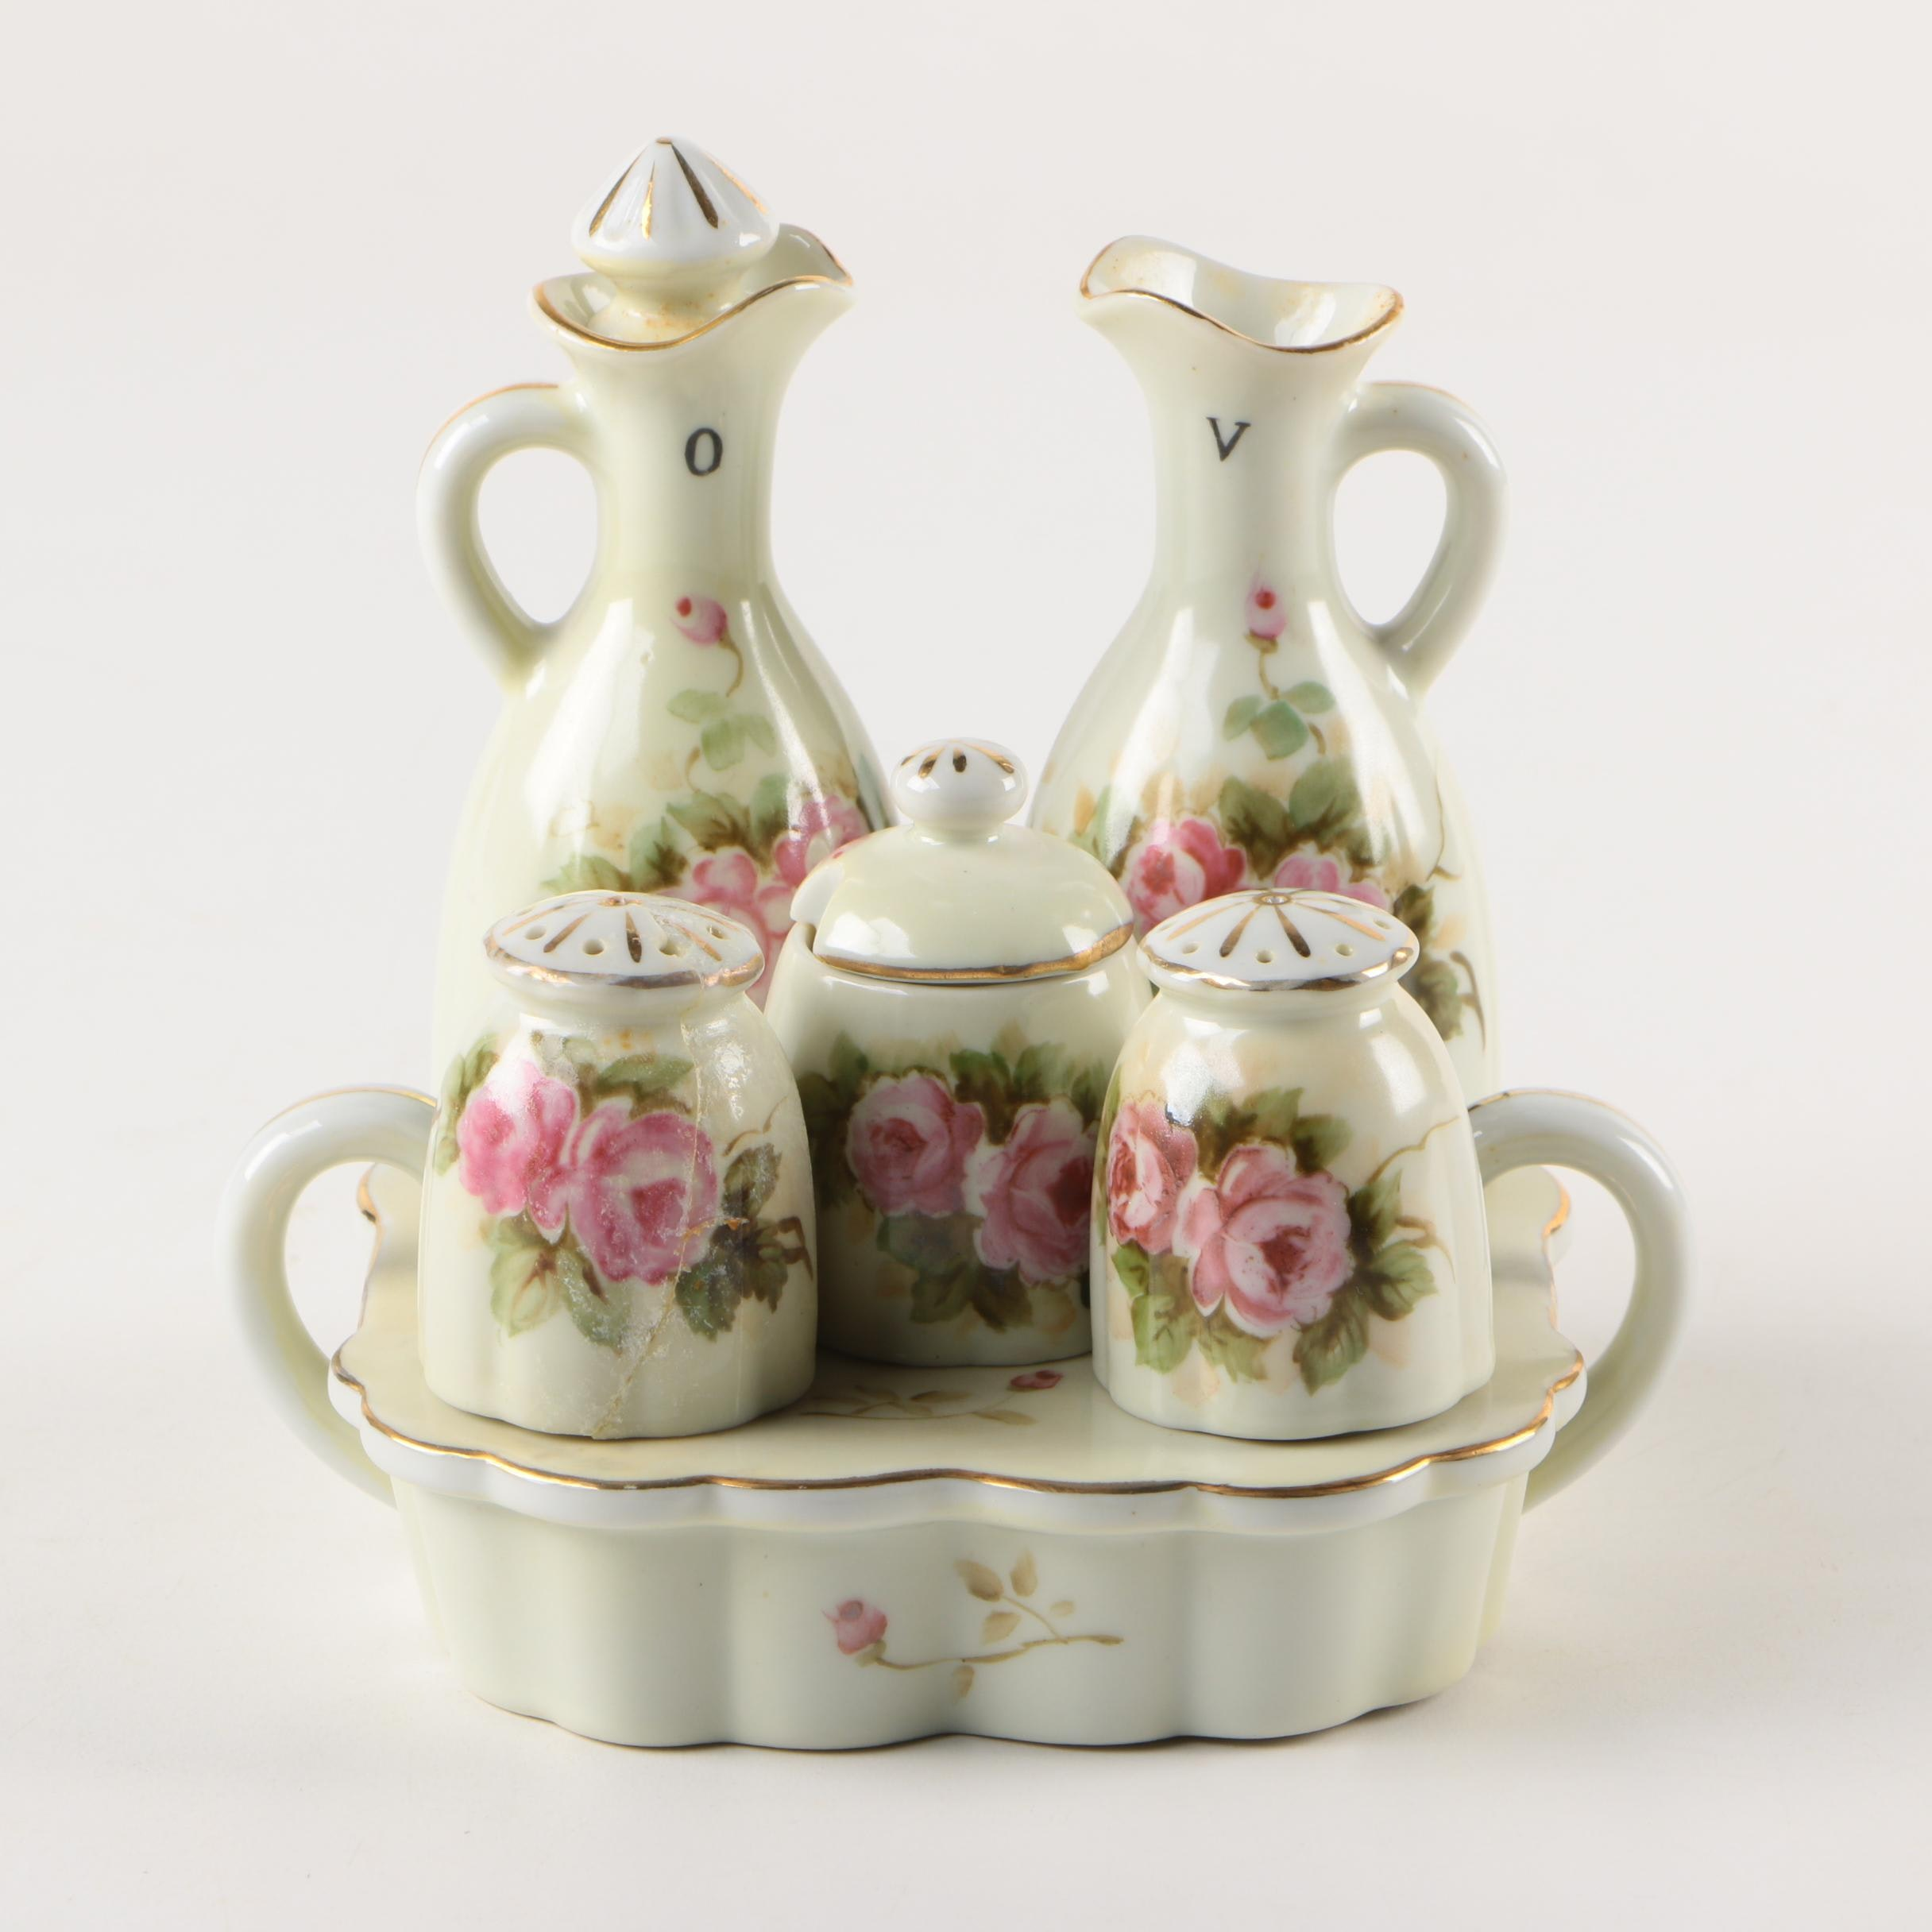 Vintage Occupied Japan Hand-Painted Porcelain Cruet Set